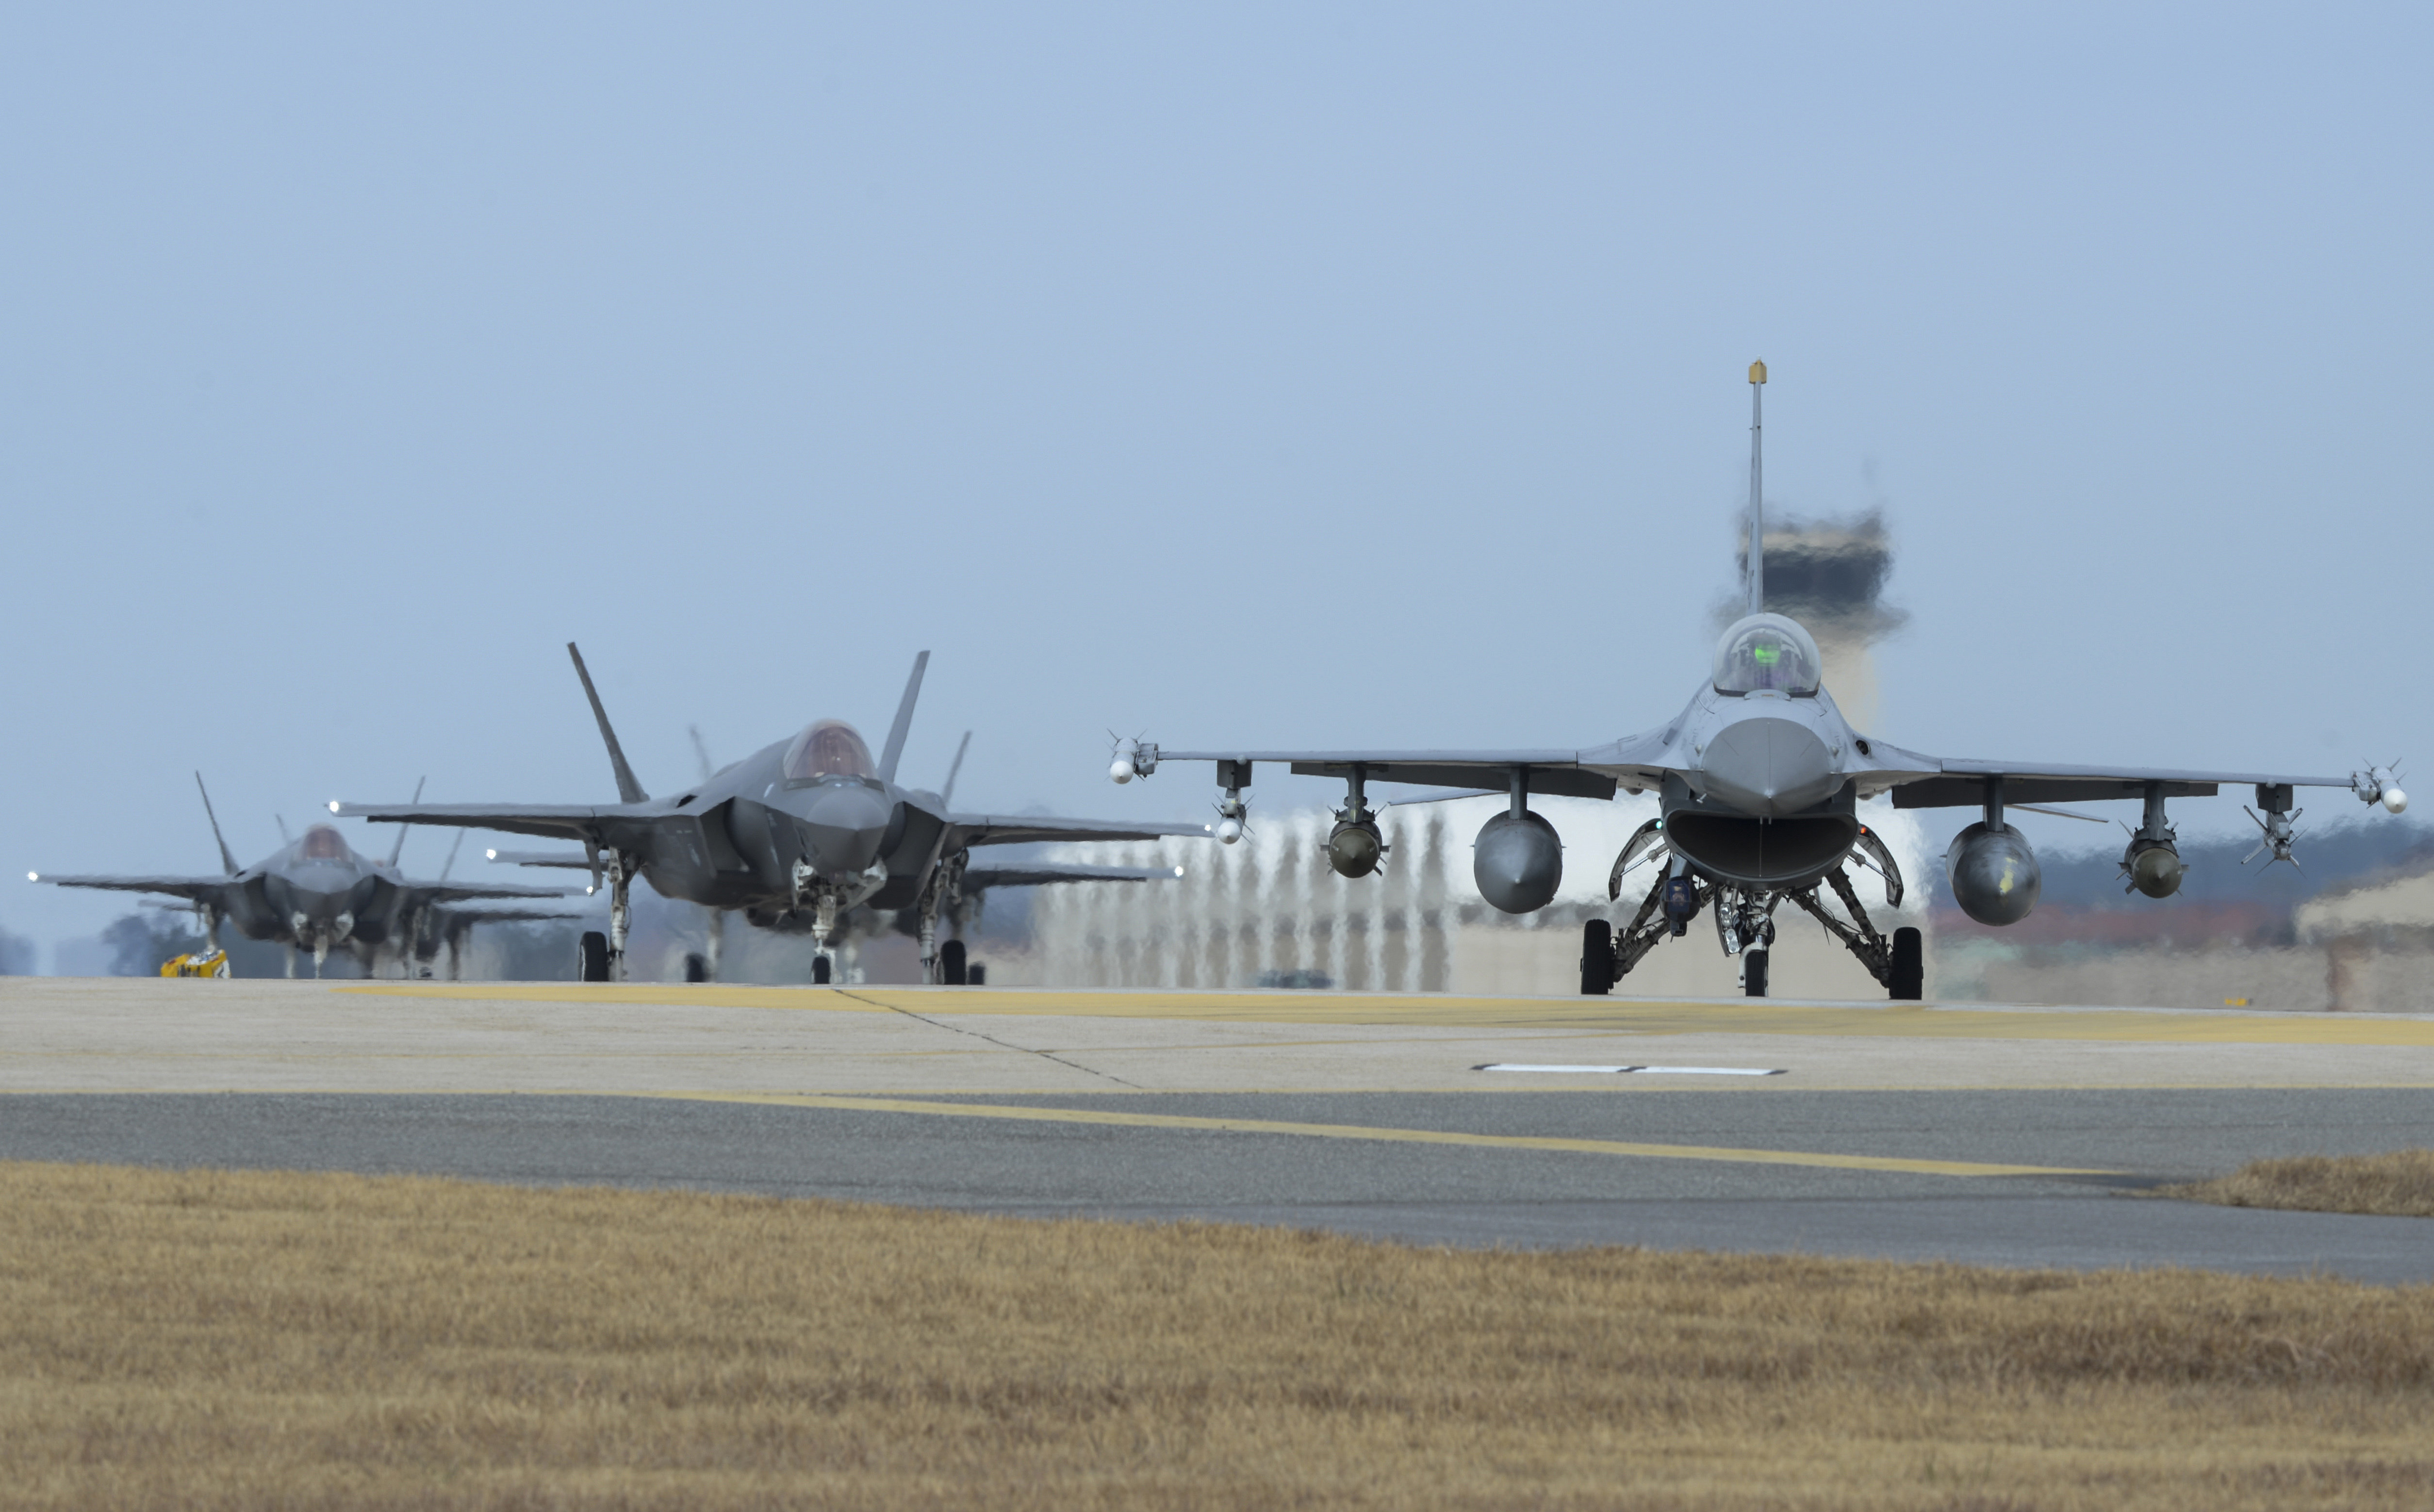 U.S. Air Force F-16 Fighting Falcon, right, and F-35A Lightning IIs assigned to the 34th Expeditionary Fighter Squadron Hill Air Force Base, Utah, taxi toward the end of the runway during the exercise VIGILANT ACE 18 at Kunsan Air Base, South Korea